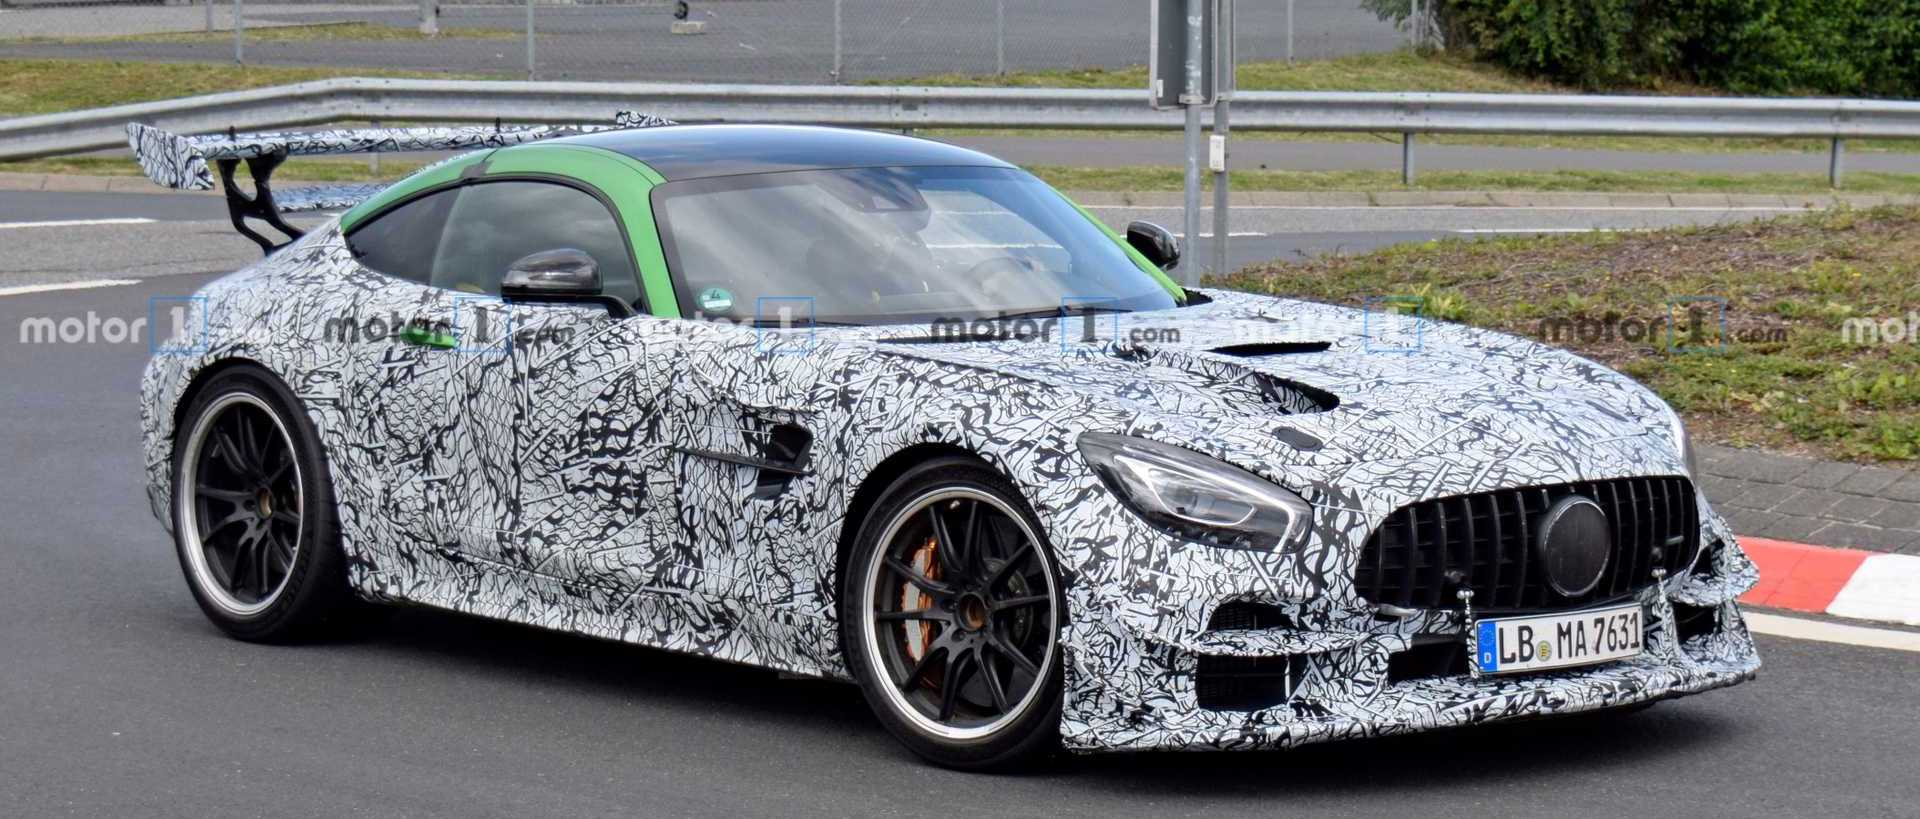 Mercedes-AMG GT R Black Series Spied With Wild Wings At The 'Ring